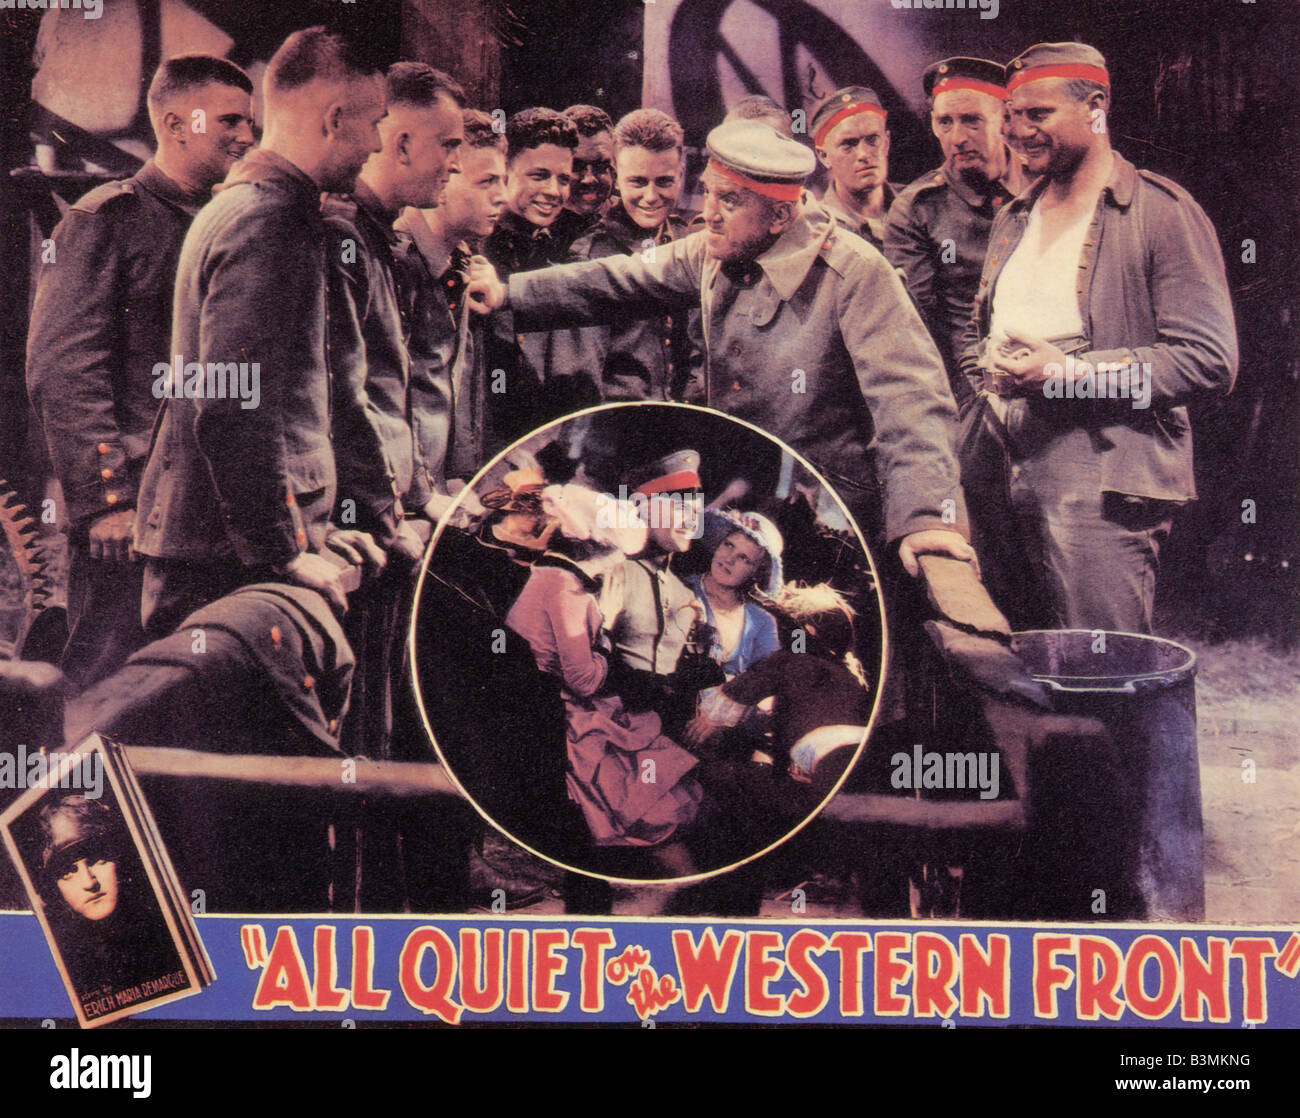 ALL QUIET ON THE WESTERN FRONT 1930 Universal film - Stock Image